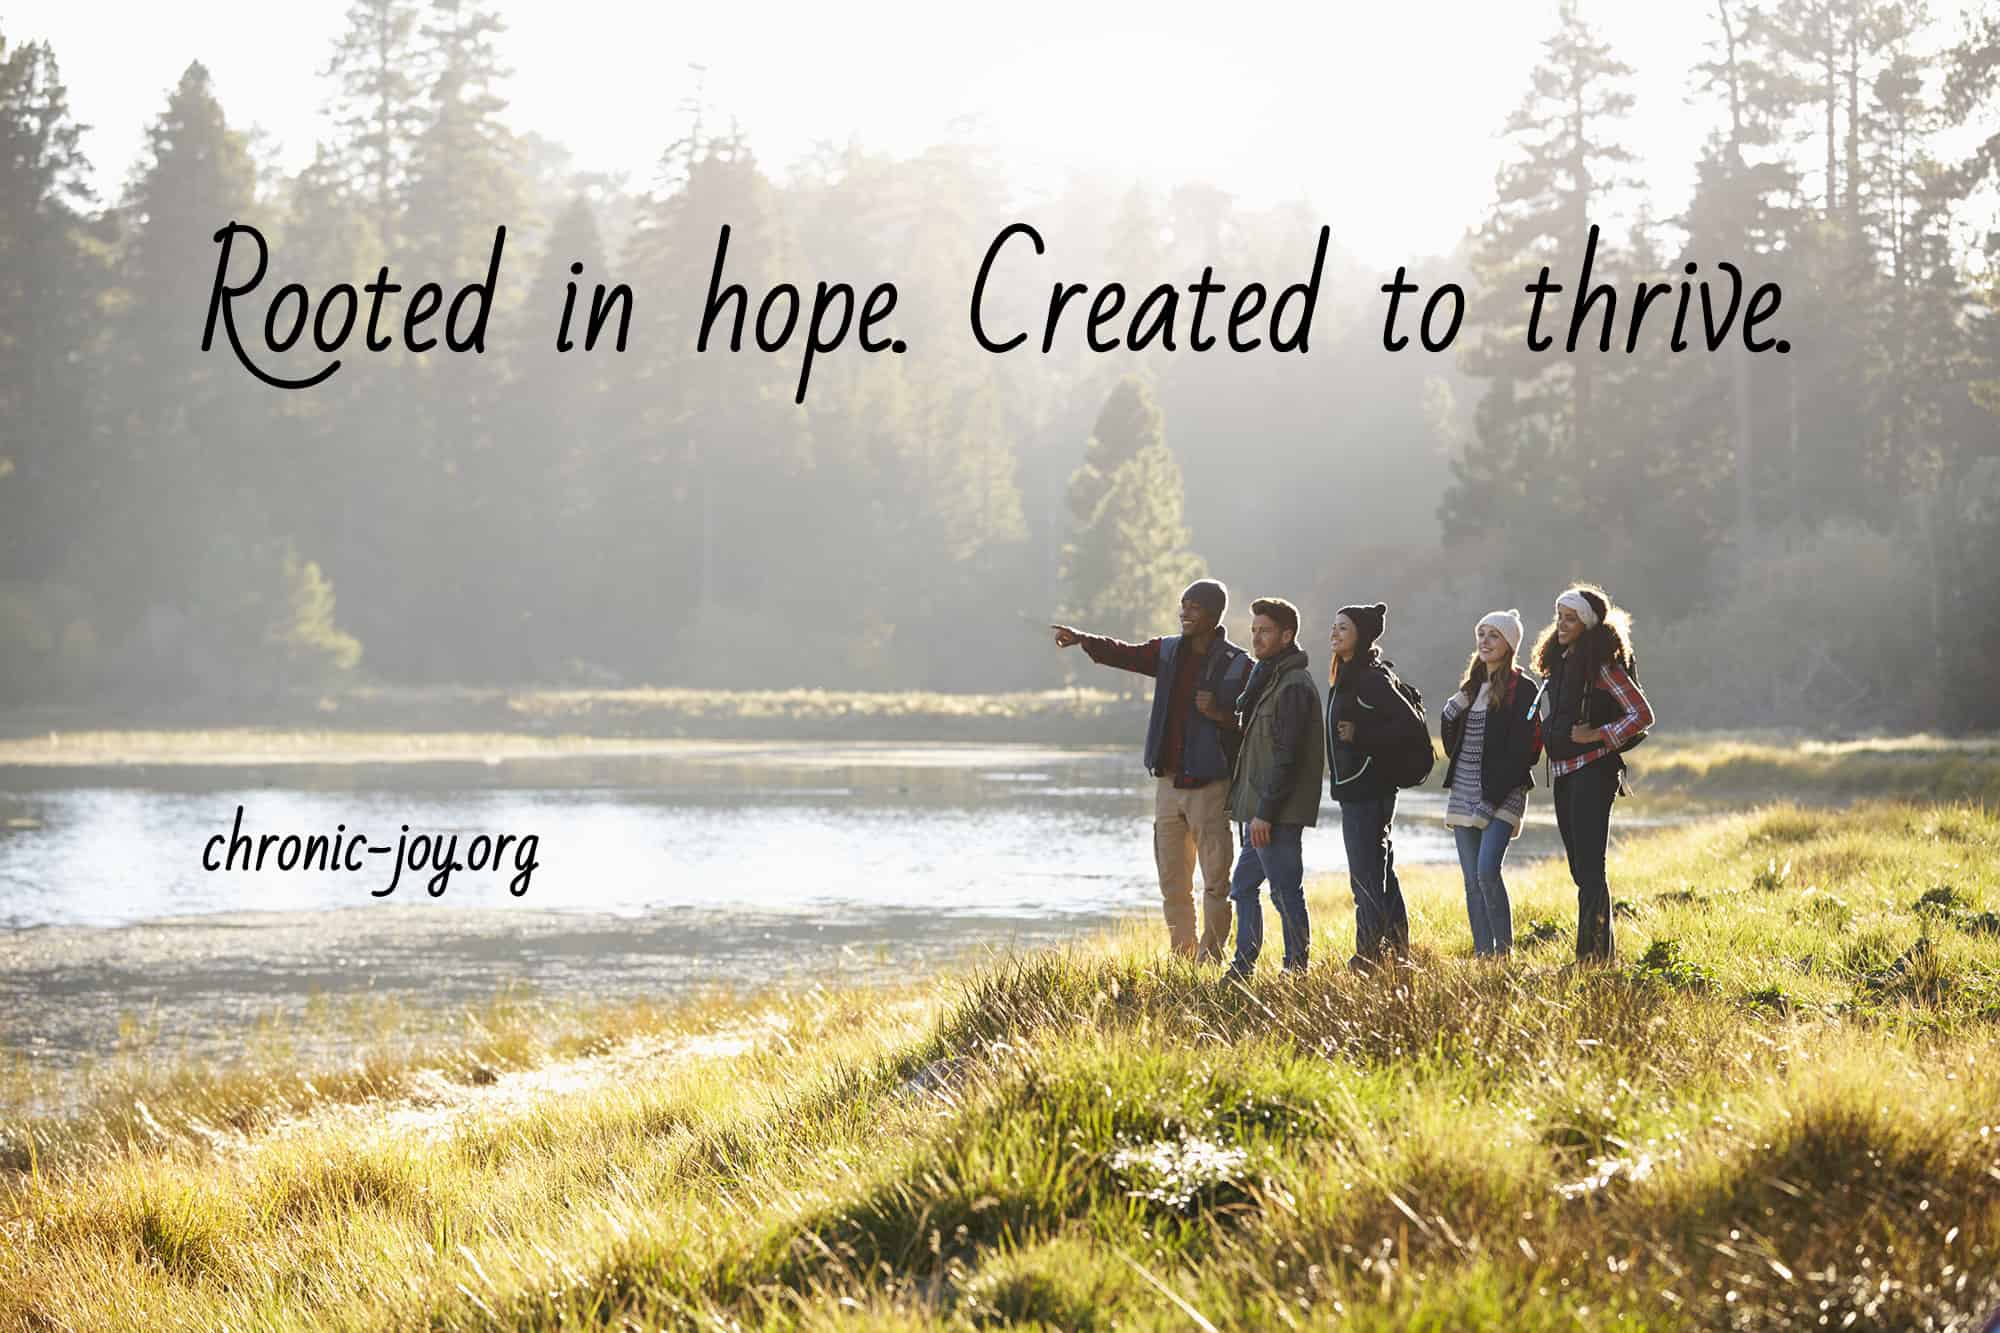 Young Adults and Chronic Illness: Rooted in hope. Created to thrive.